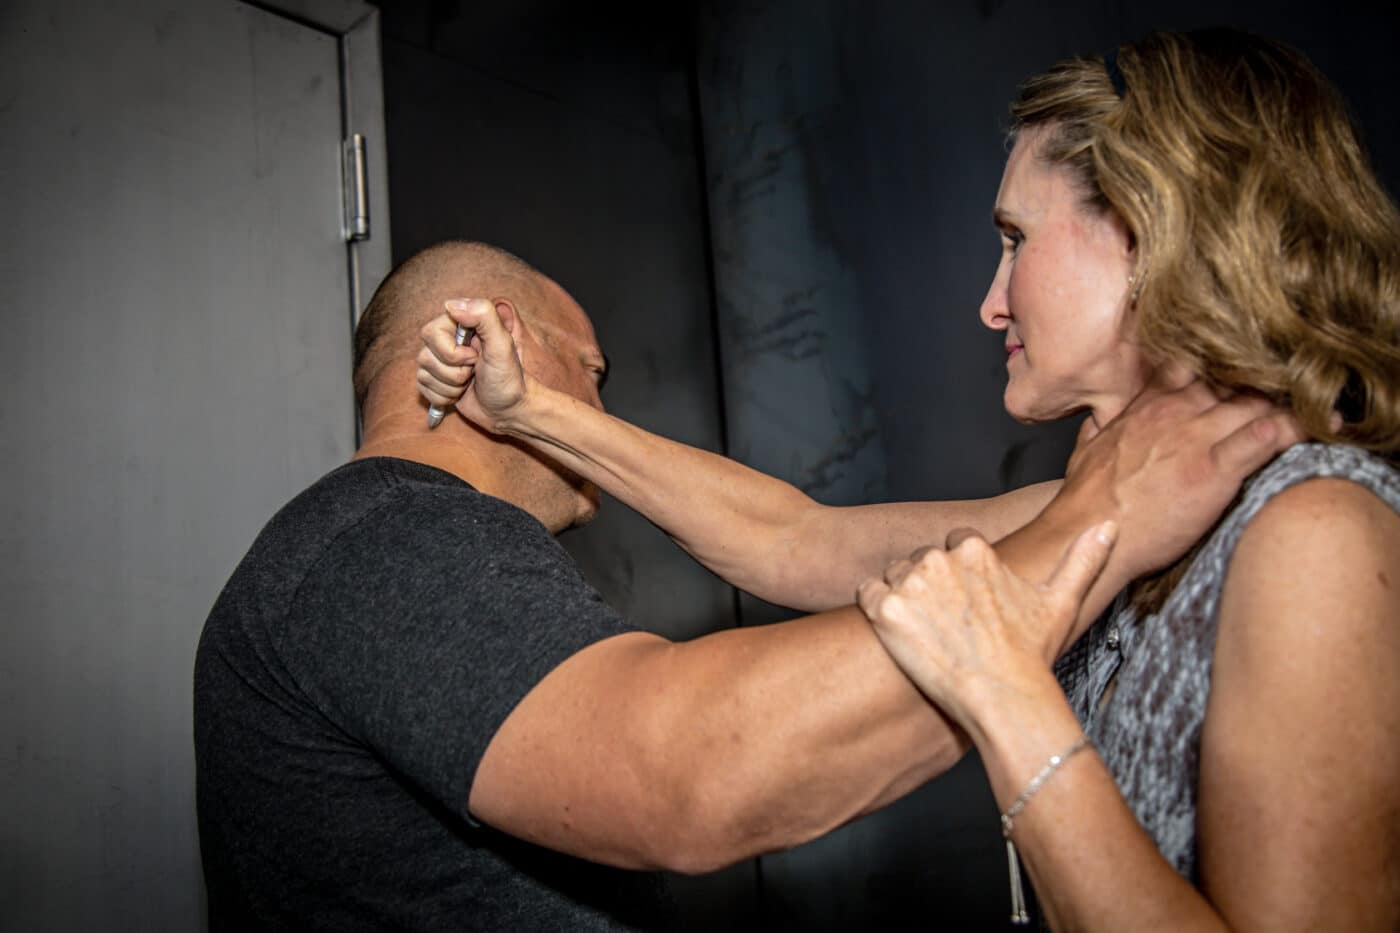 Woman stops choke with a neck stab